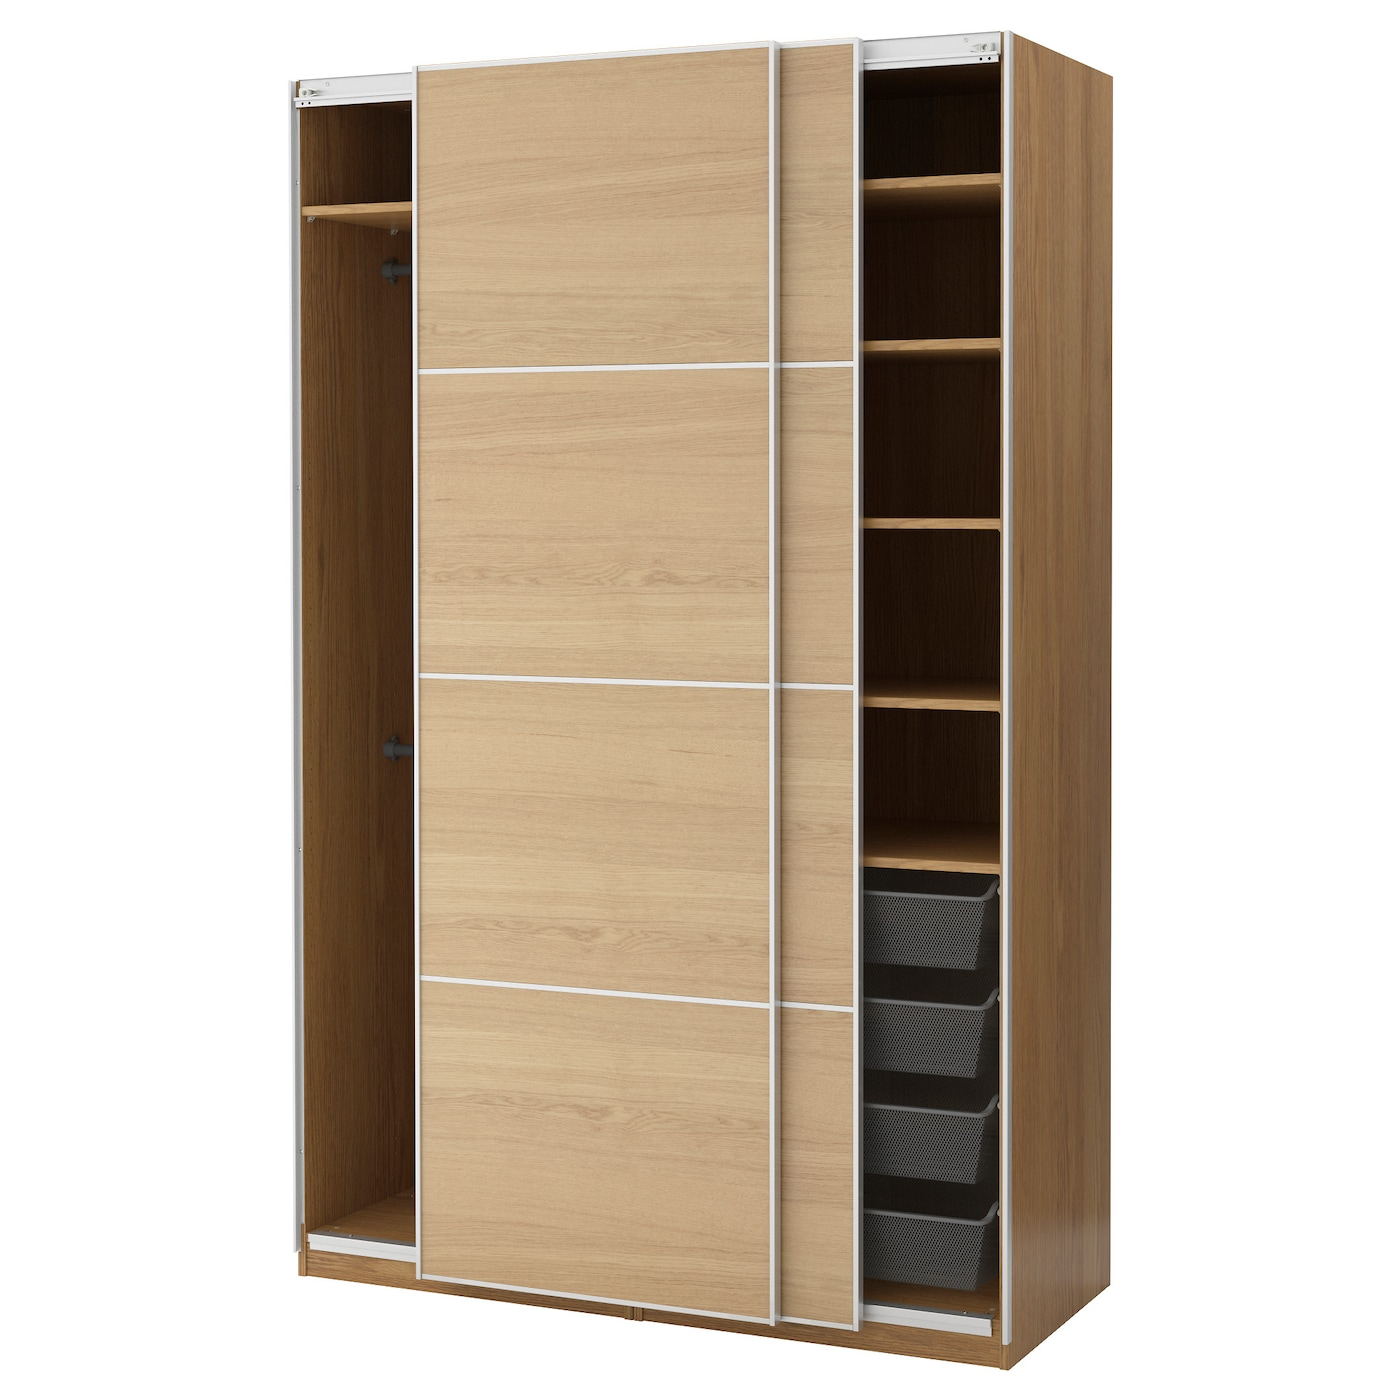 pax wardrobe oak effect ilseng oak veneer 150 x 66 x 236 cm ikea. Black Bedroom Furniture Sets. Home Design Ideas